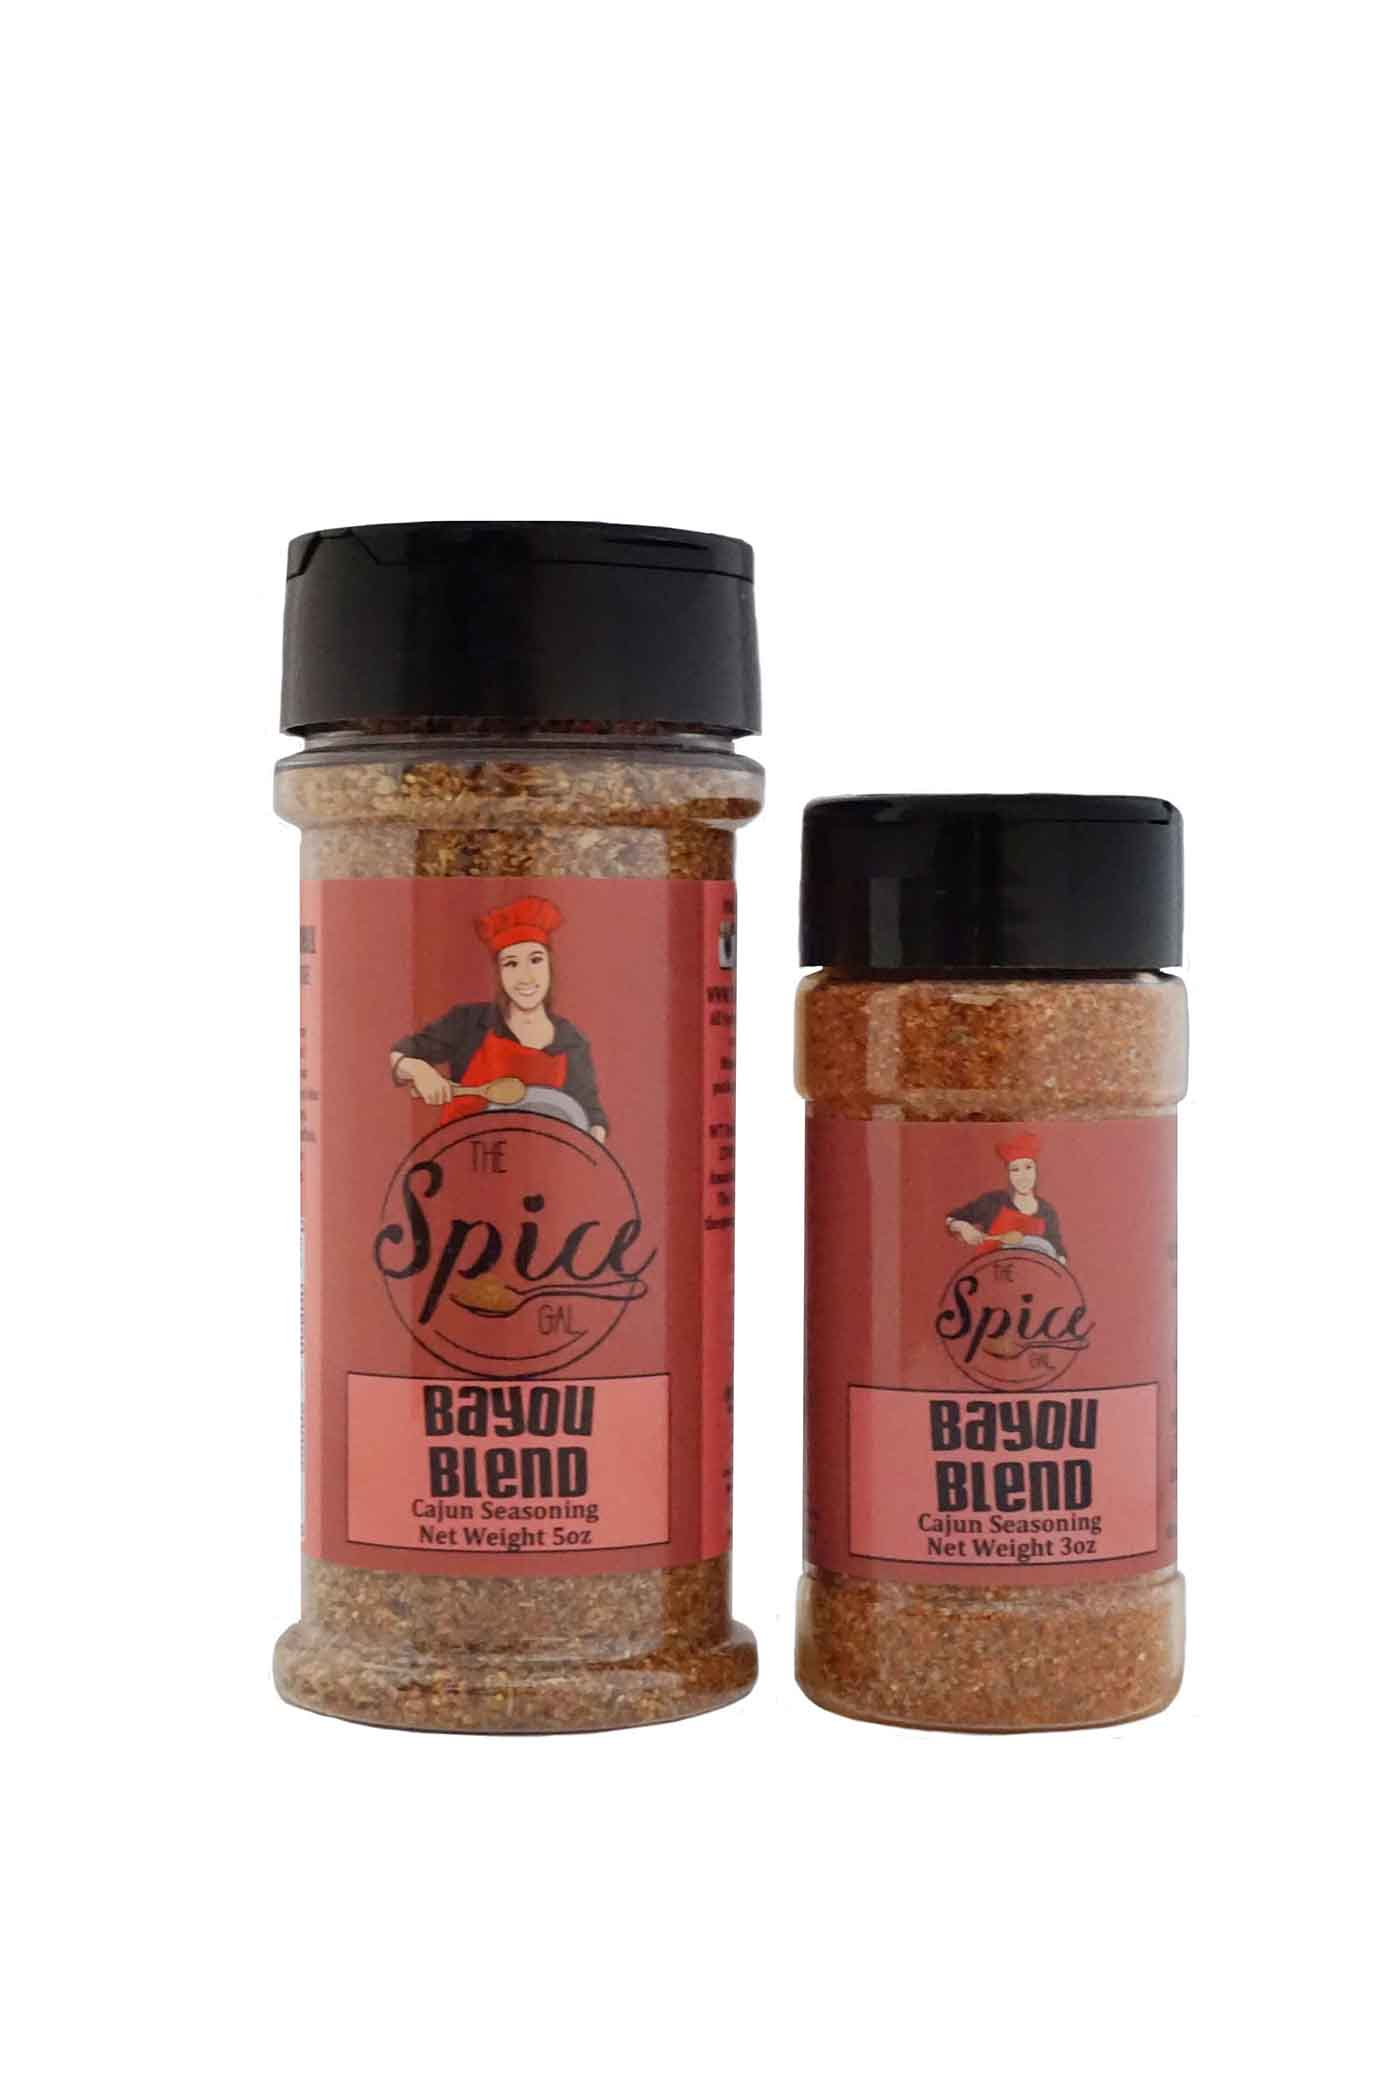 Bayou Blend (Cajun Seasoning) 3oz